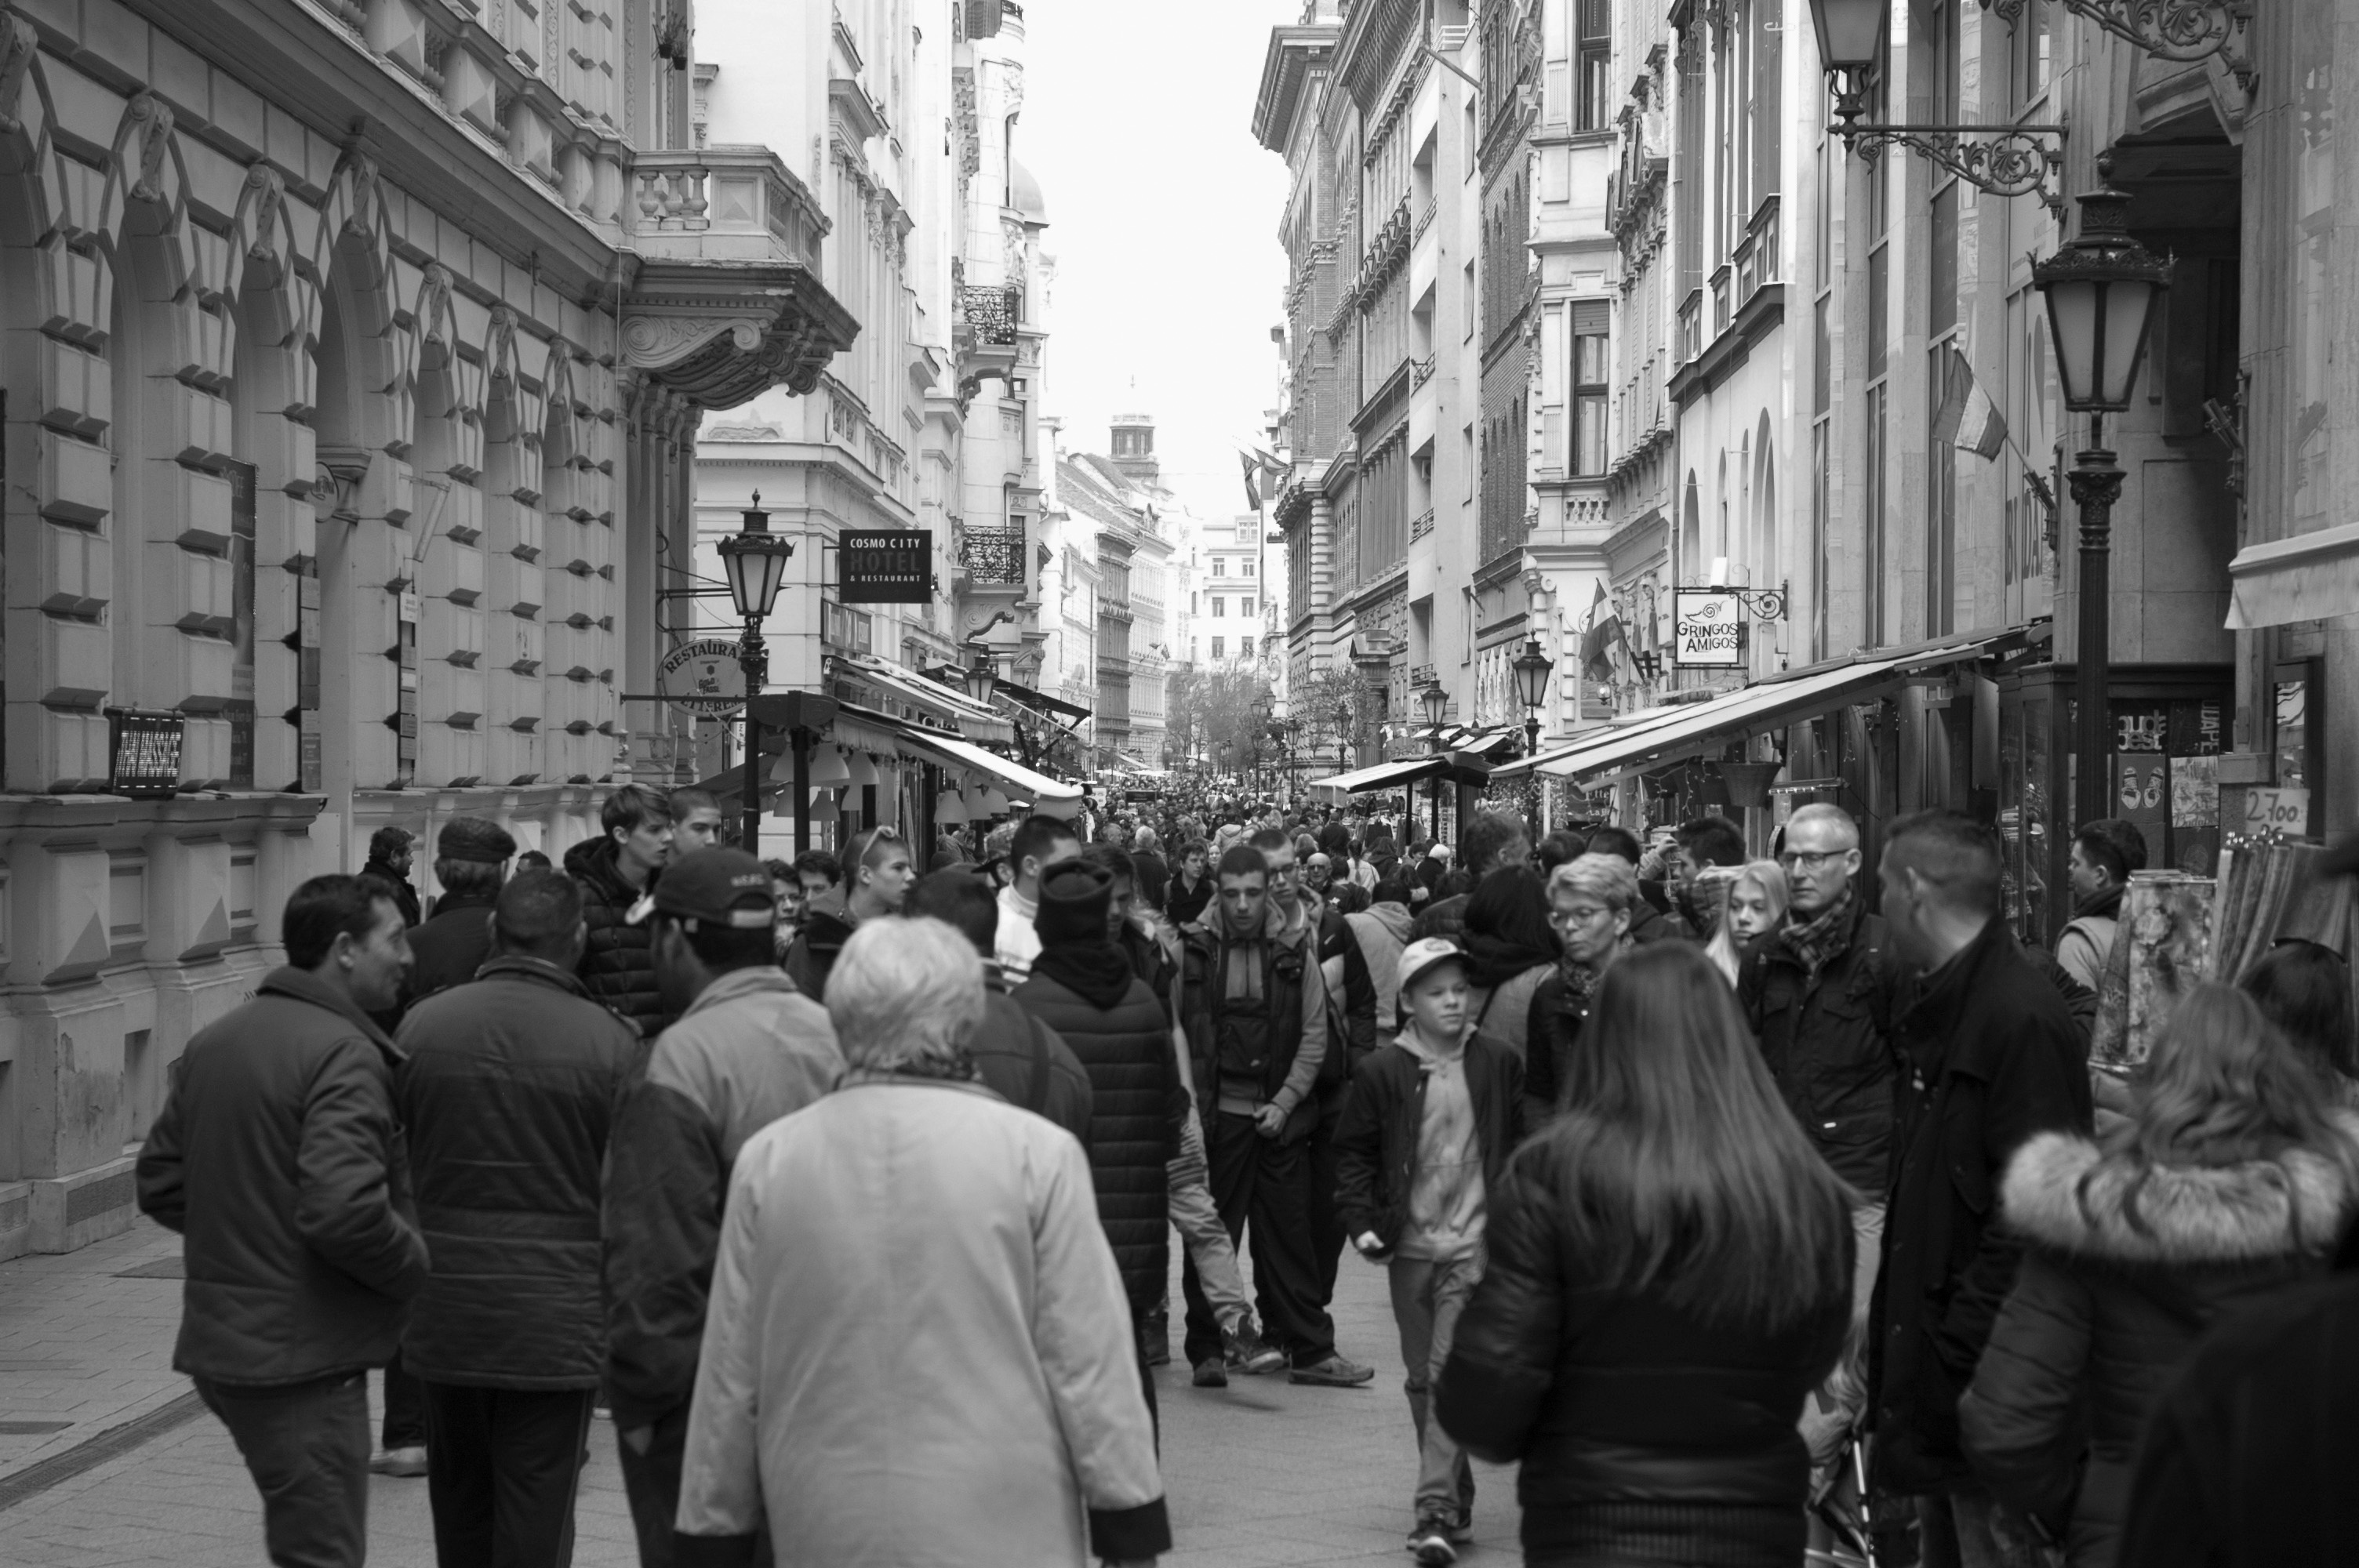 street and people